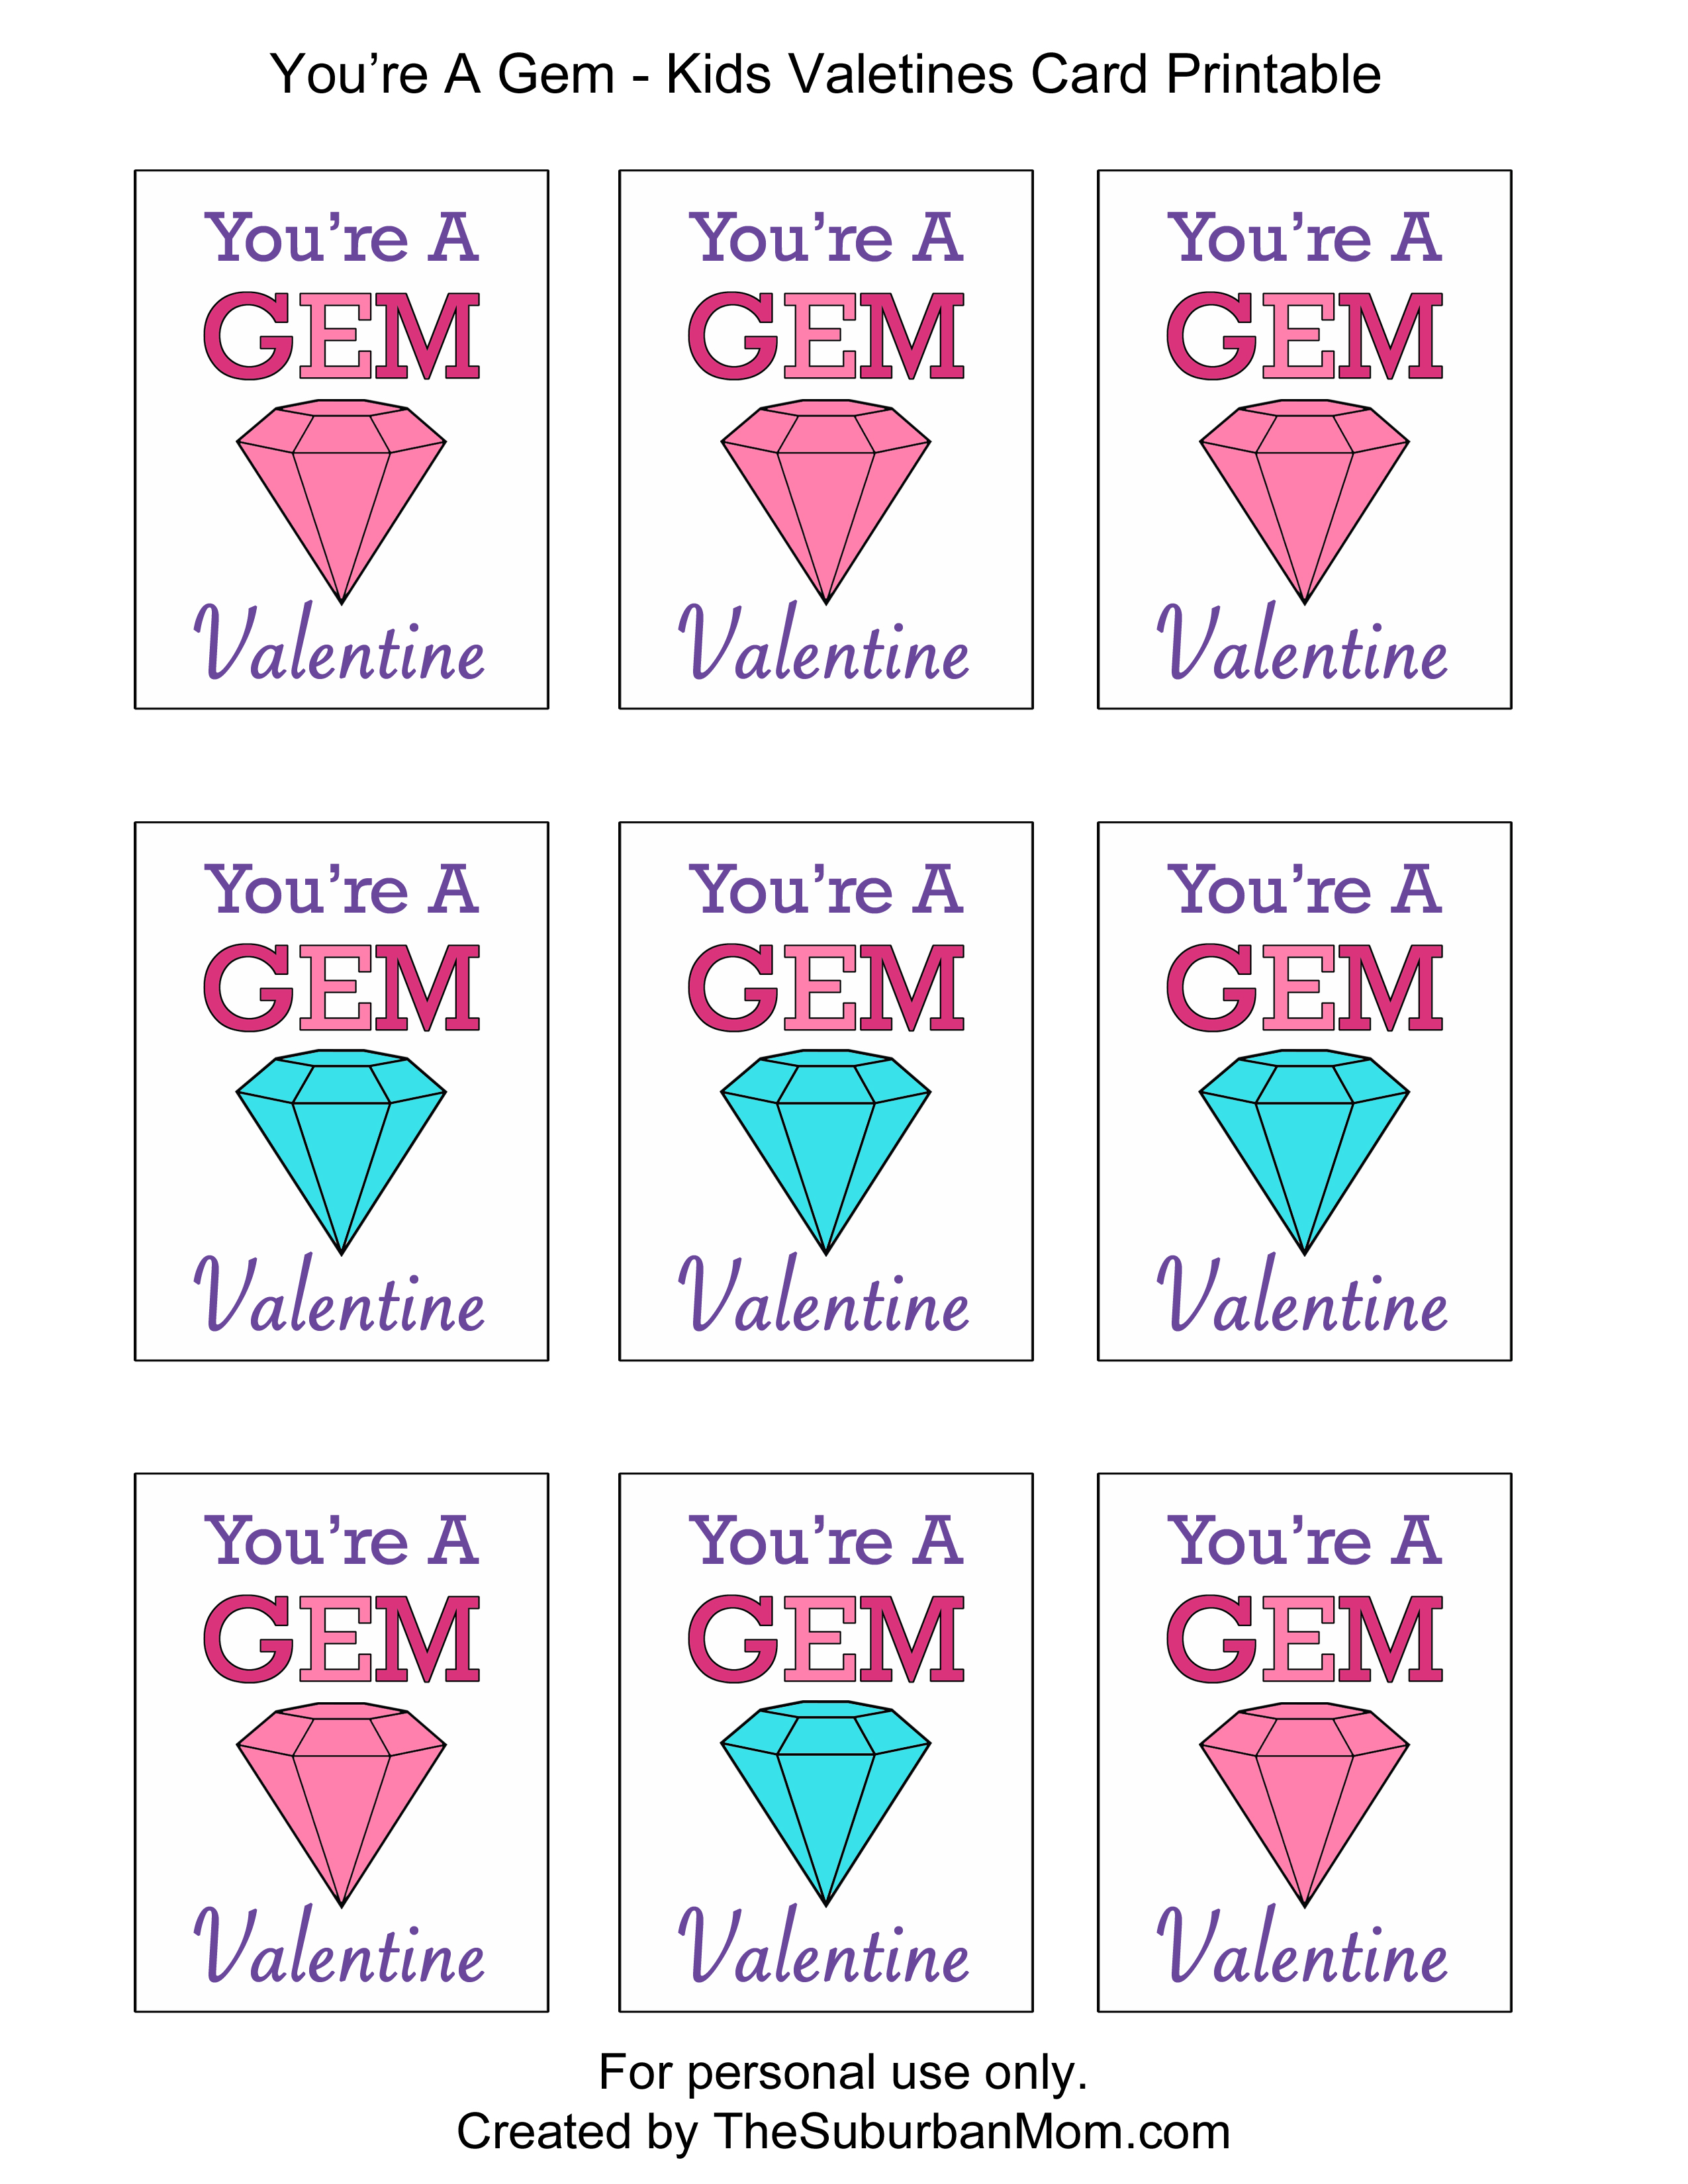 Kids Valentines Cards You Re A Gem Free Printable